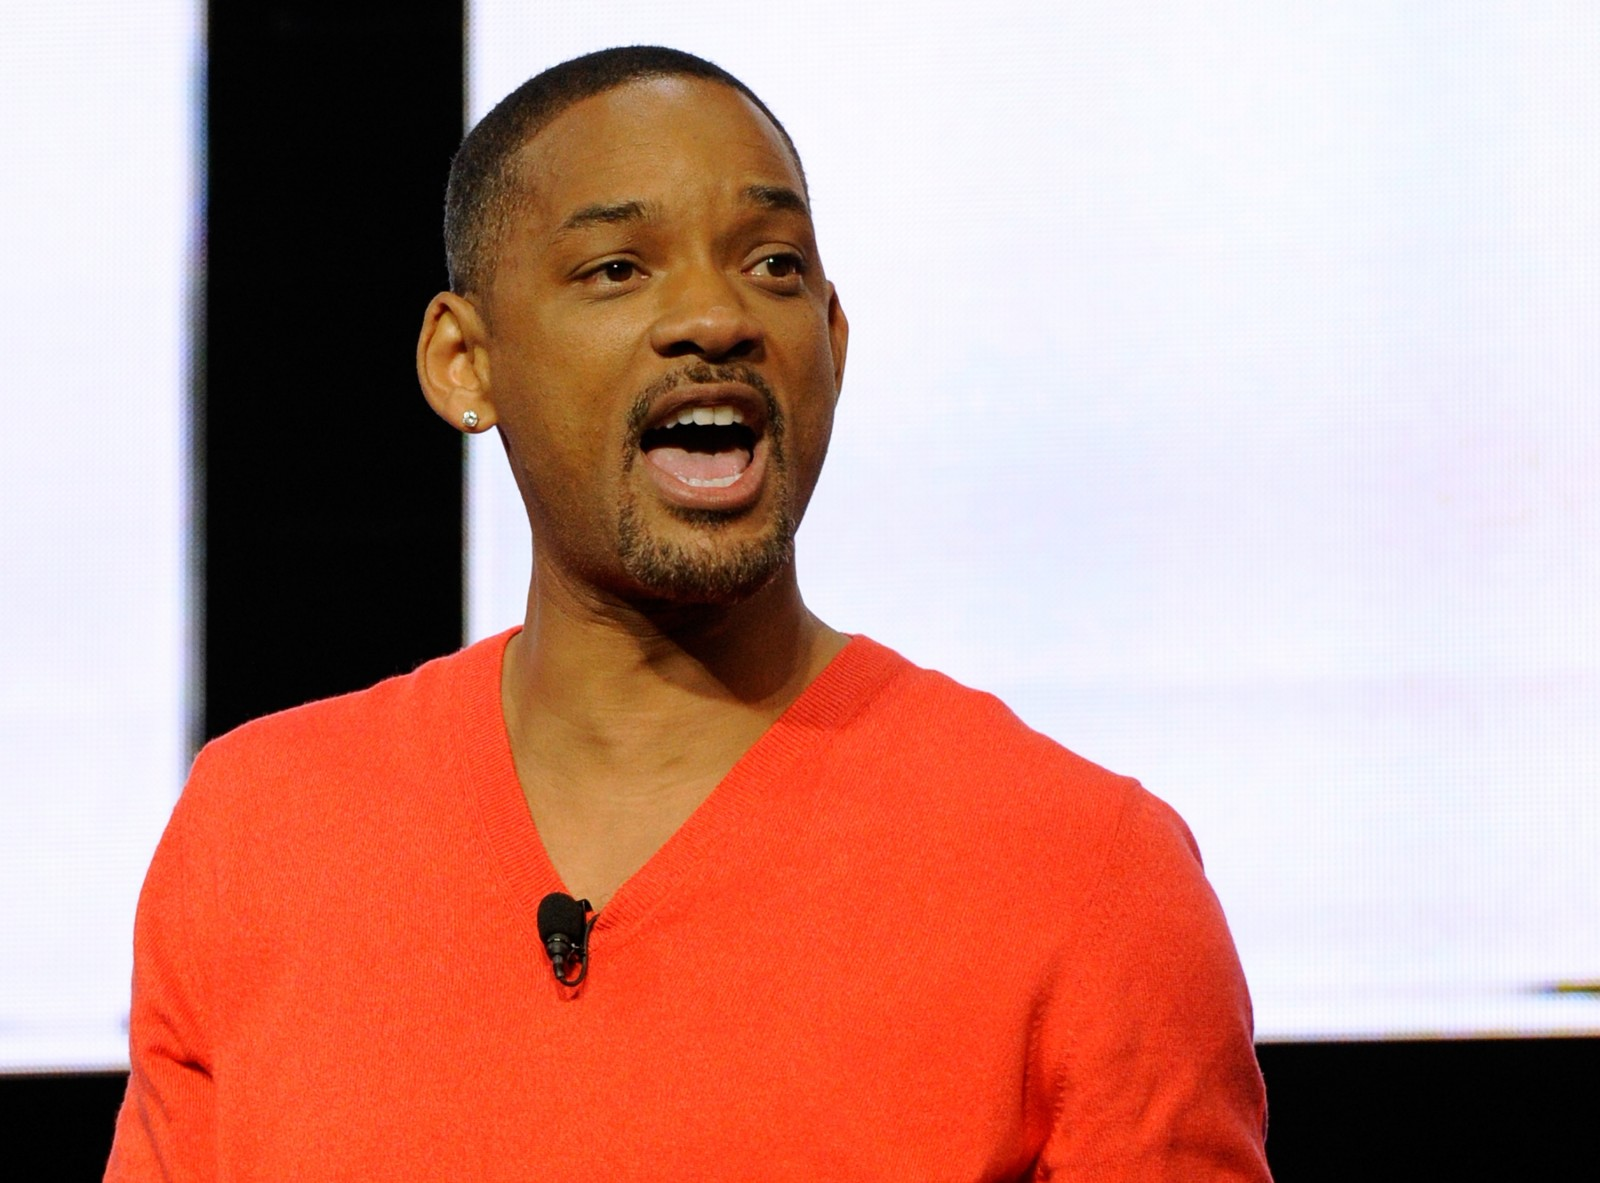 Will Smith has signed on to star in the long awaited Bad Boys 3 movie!